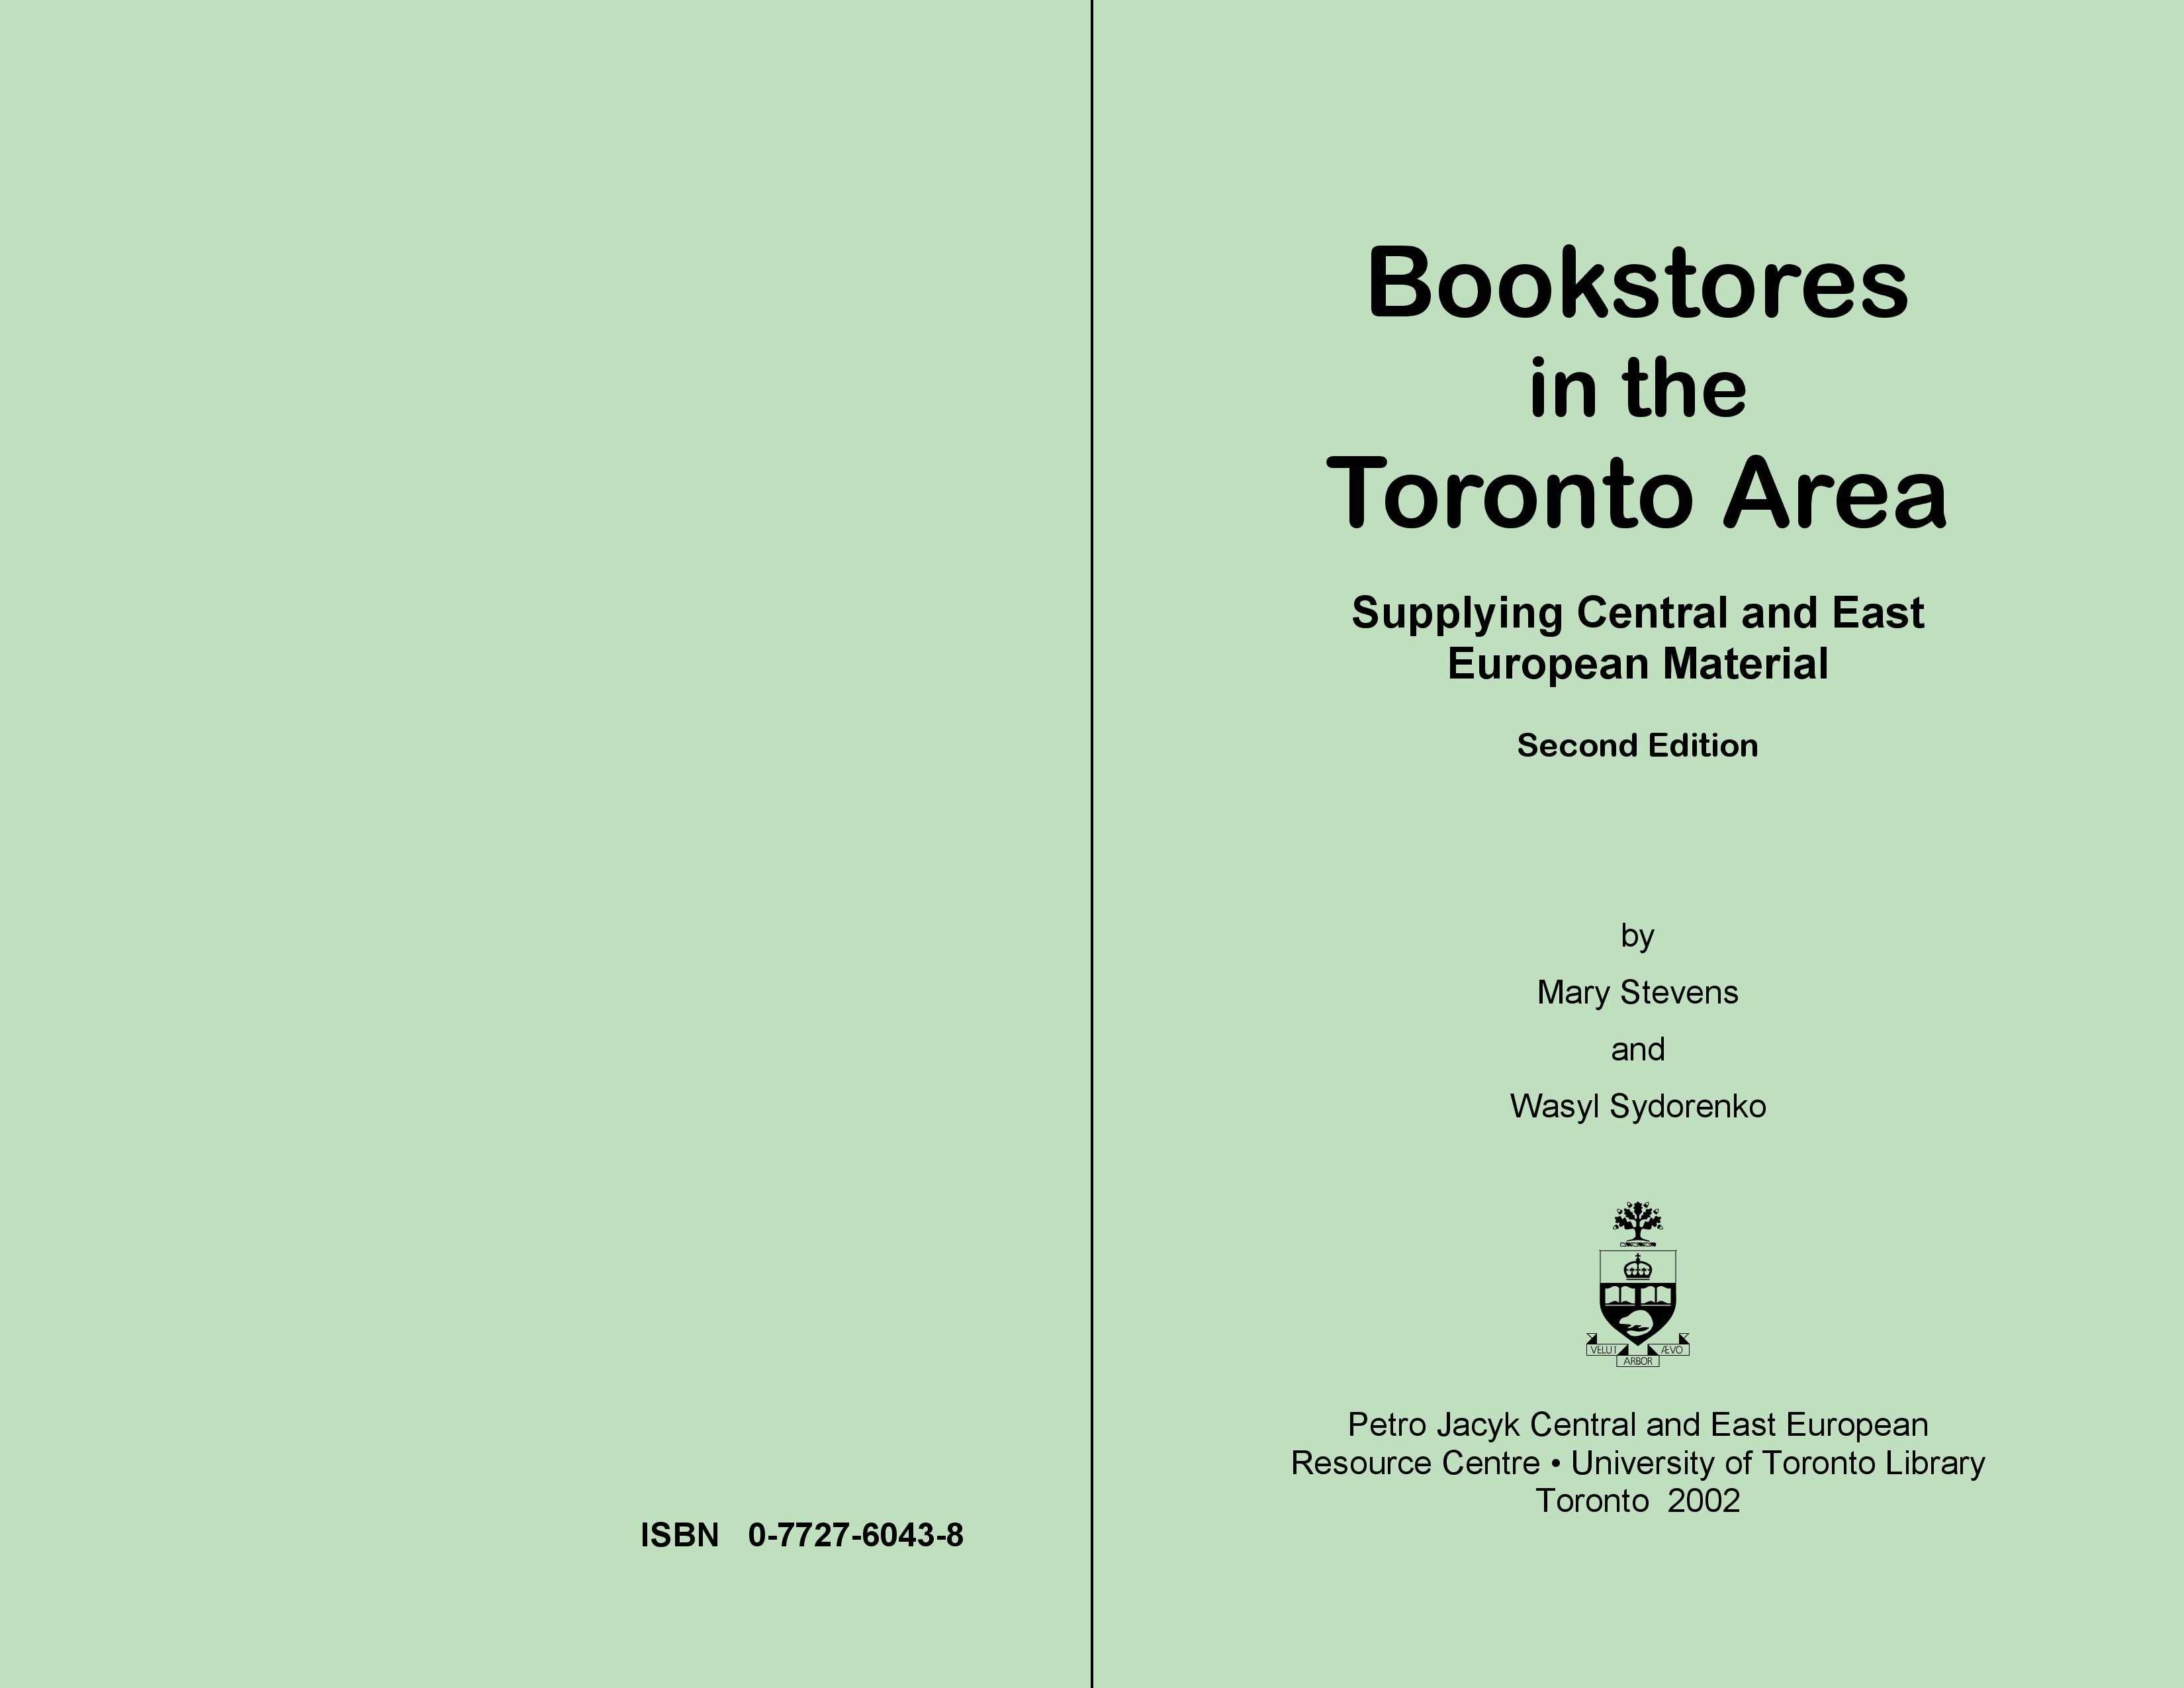 Bookstores in the Toronto Area Supplying Central and East European Material, by Mary Stevens and Wasyl Sydorenko. 2nd ed. (Toronto: University of Toronto Library, 2002). 38 pp.